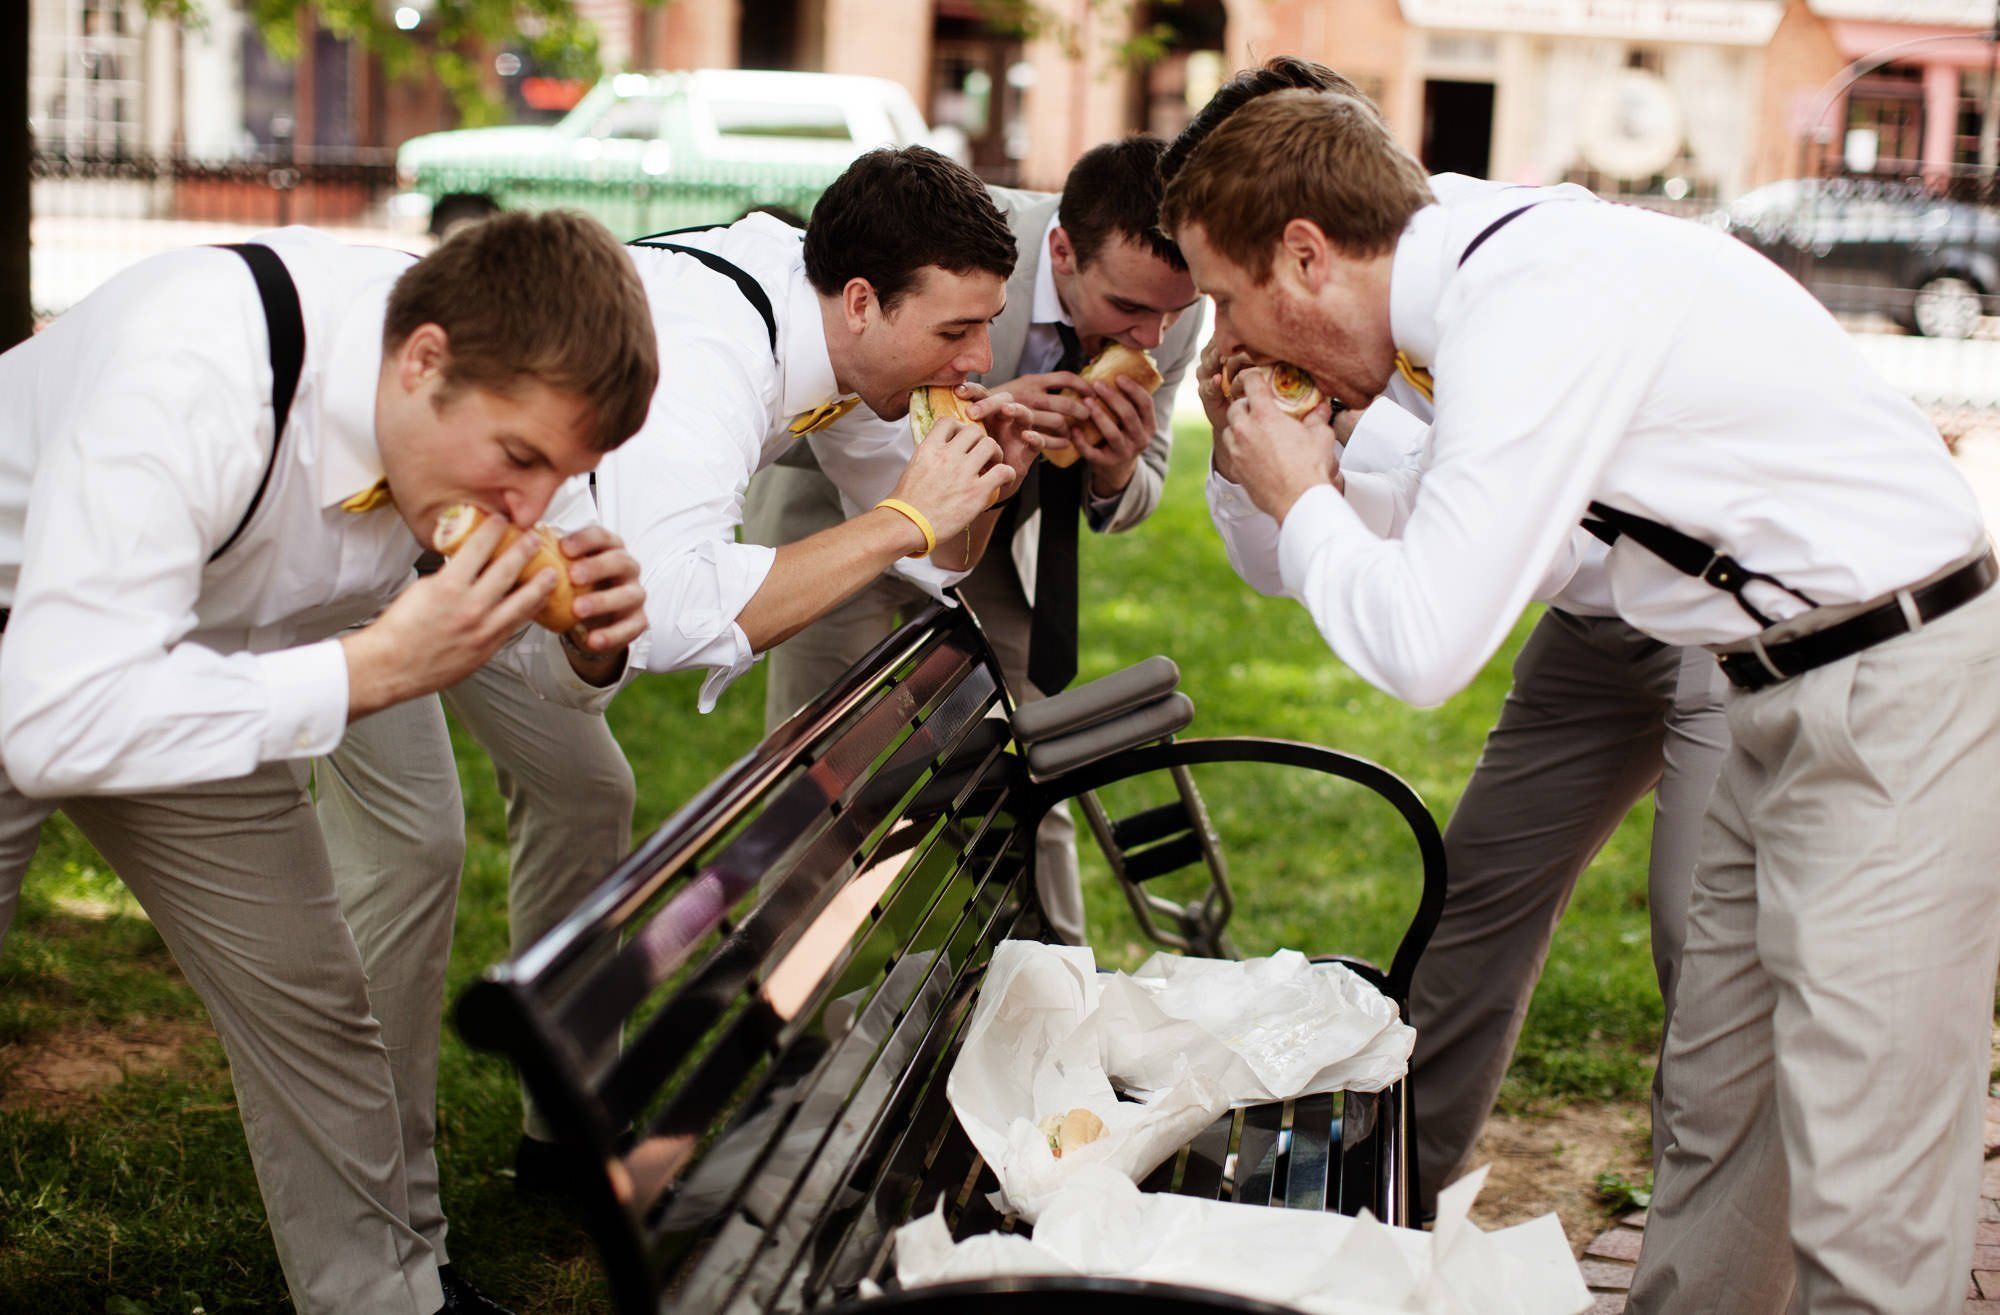 Groomsmen eat sandwiches in a park in Downtown Leesburg before the wedding at Sunset Hills Vineyard.